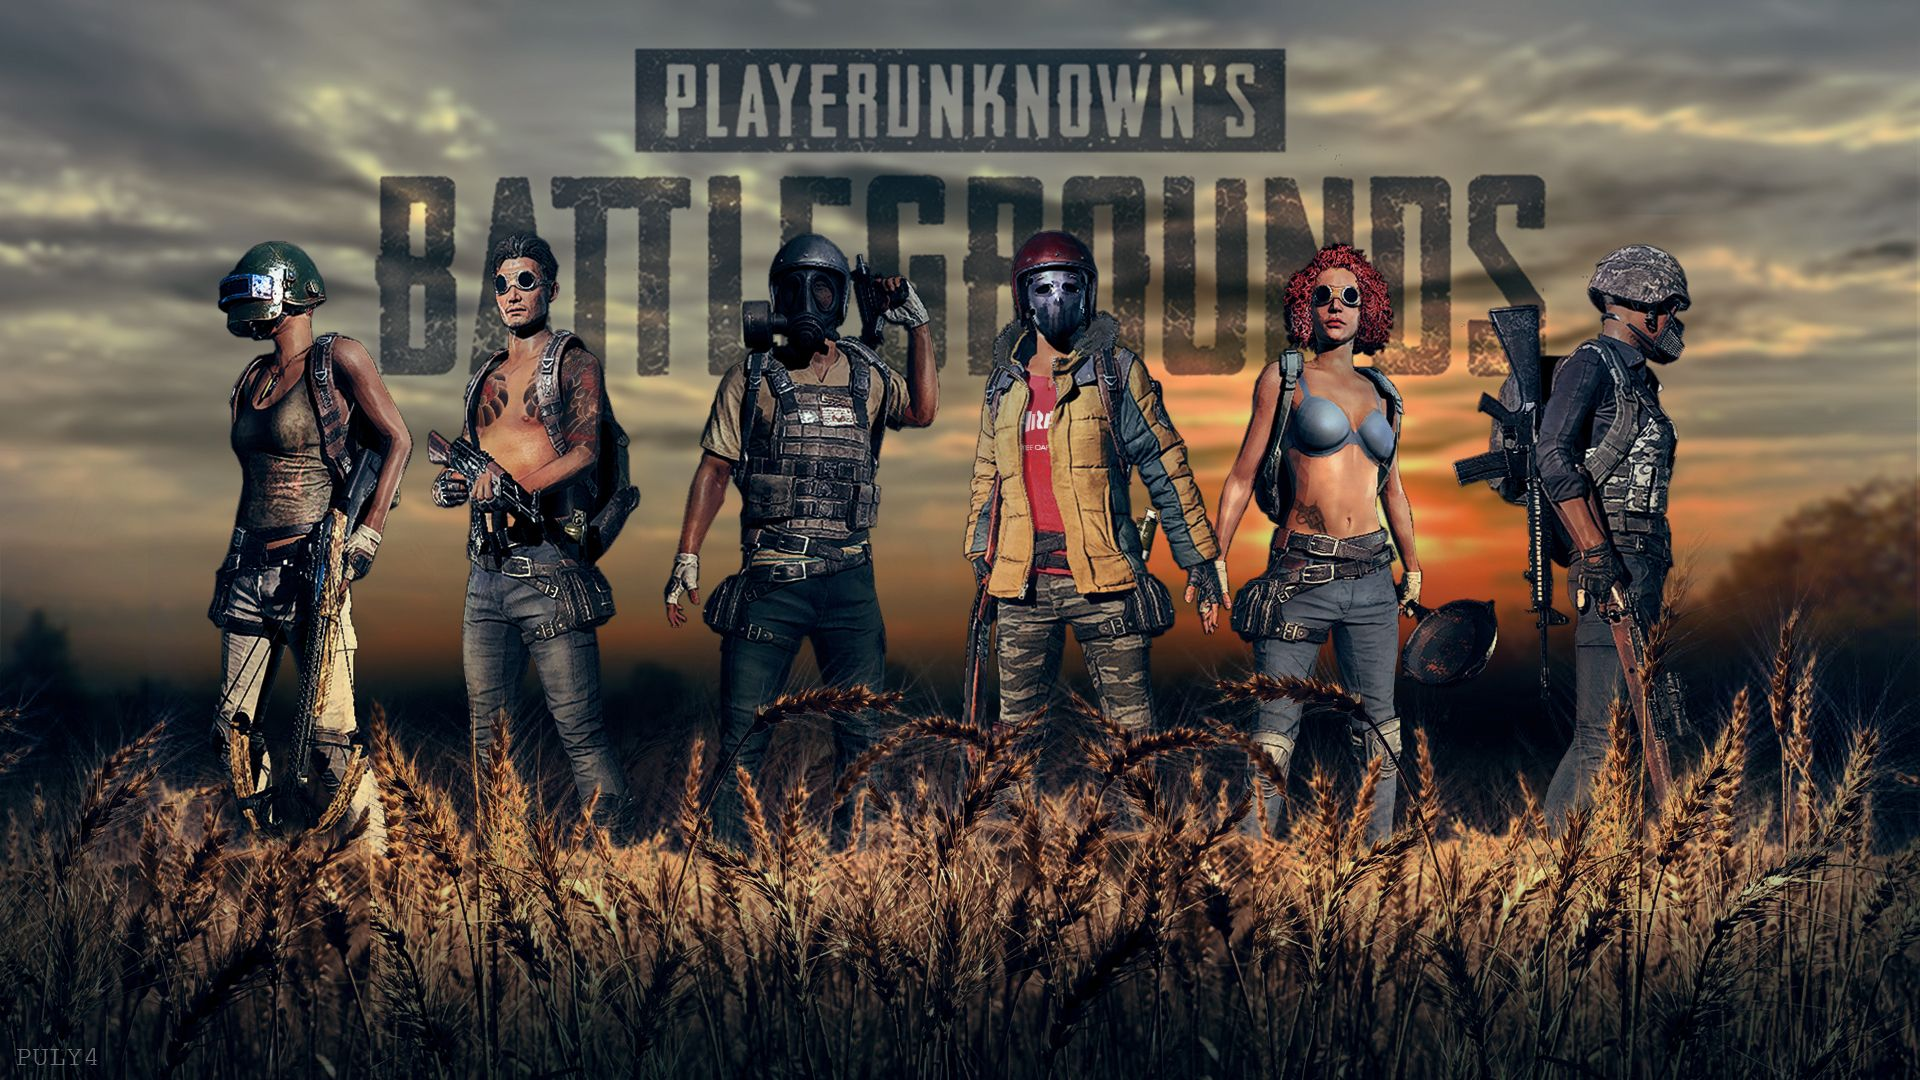 Player Unknown S Battlegrounds Pubg 4k Pubg Wallpaper Phone Pubg Wallpaper Iphone Pubg Wallpaper 1920x1080 Pc Desktop Wallpaper 4k Photos Gaming Wallpapers